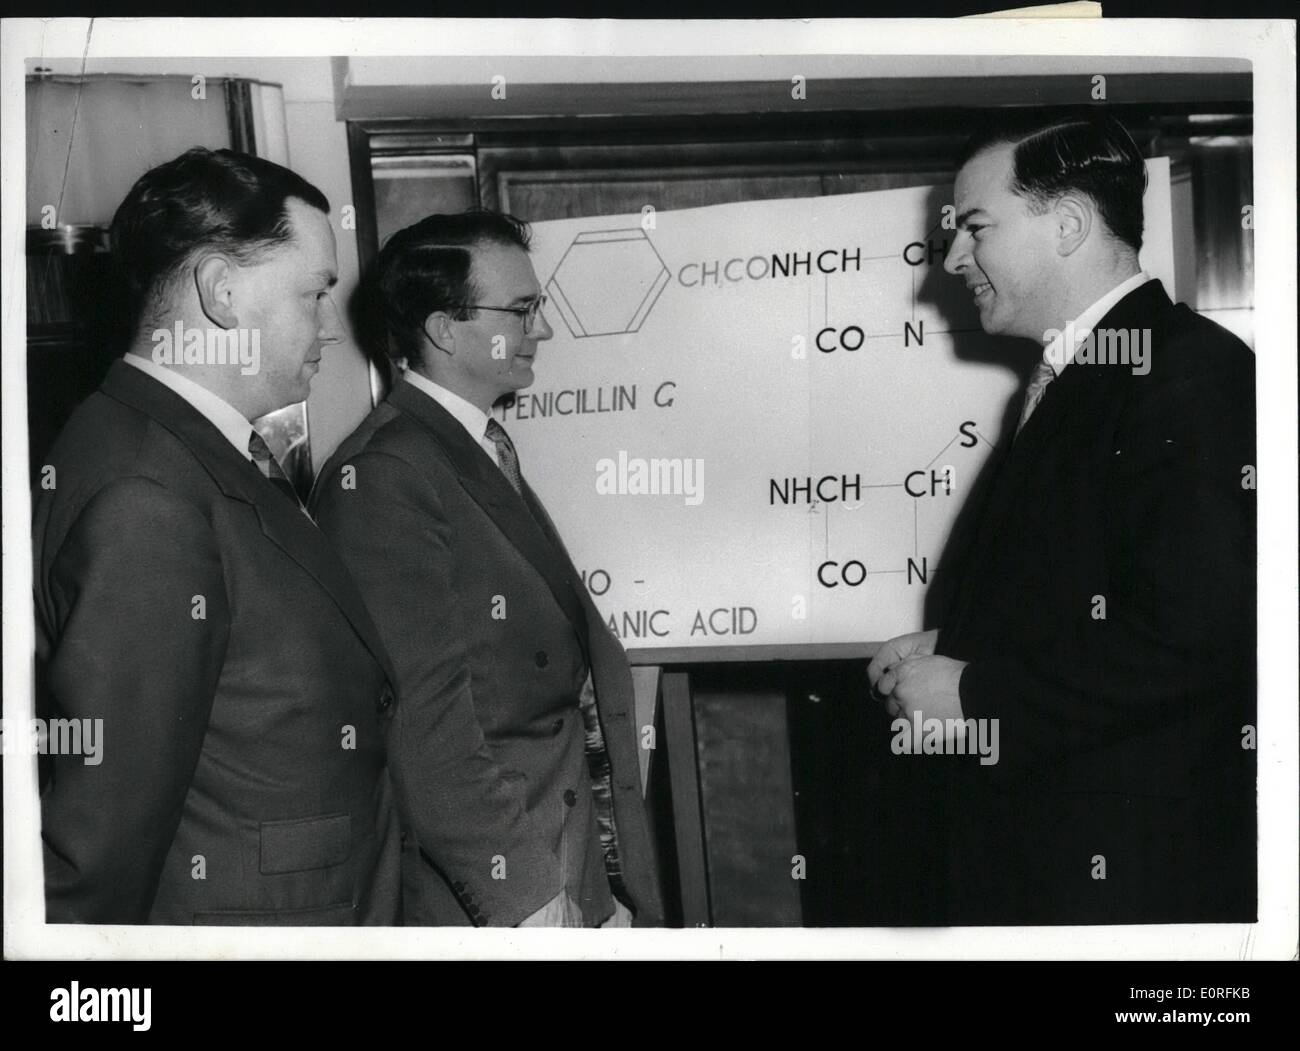 Jun. 06, 1959 - 6-3-59 British research workers discover new type of penicillin substance. Members of the Beecham Research Laboratories Research Team were to be seen at the Savoy Hotel this afternoon, when a statement was made on the substance which they have discovered from which new type of penicillin can be produced that may overcome resistant germs and cause no ill effects in people normally sensitive to penicillin. It is said to be the most important break through since Fleming's discovery in 1929. The team members are F.R. Batchlor of Ockley, Surrey; F.P. Doyle of West Ham, Essex; J.H.G - Stock Image